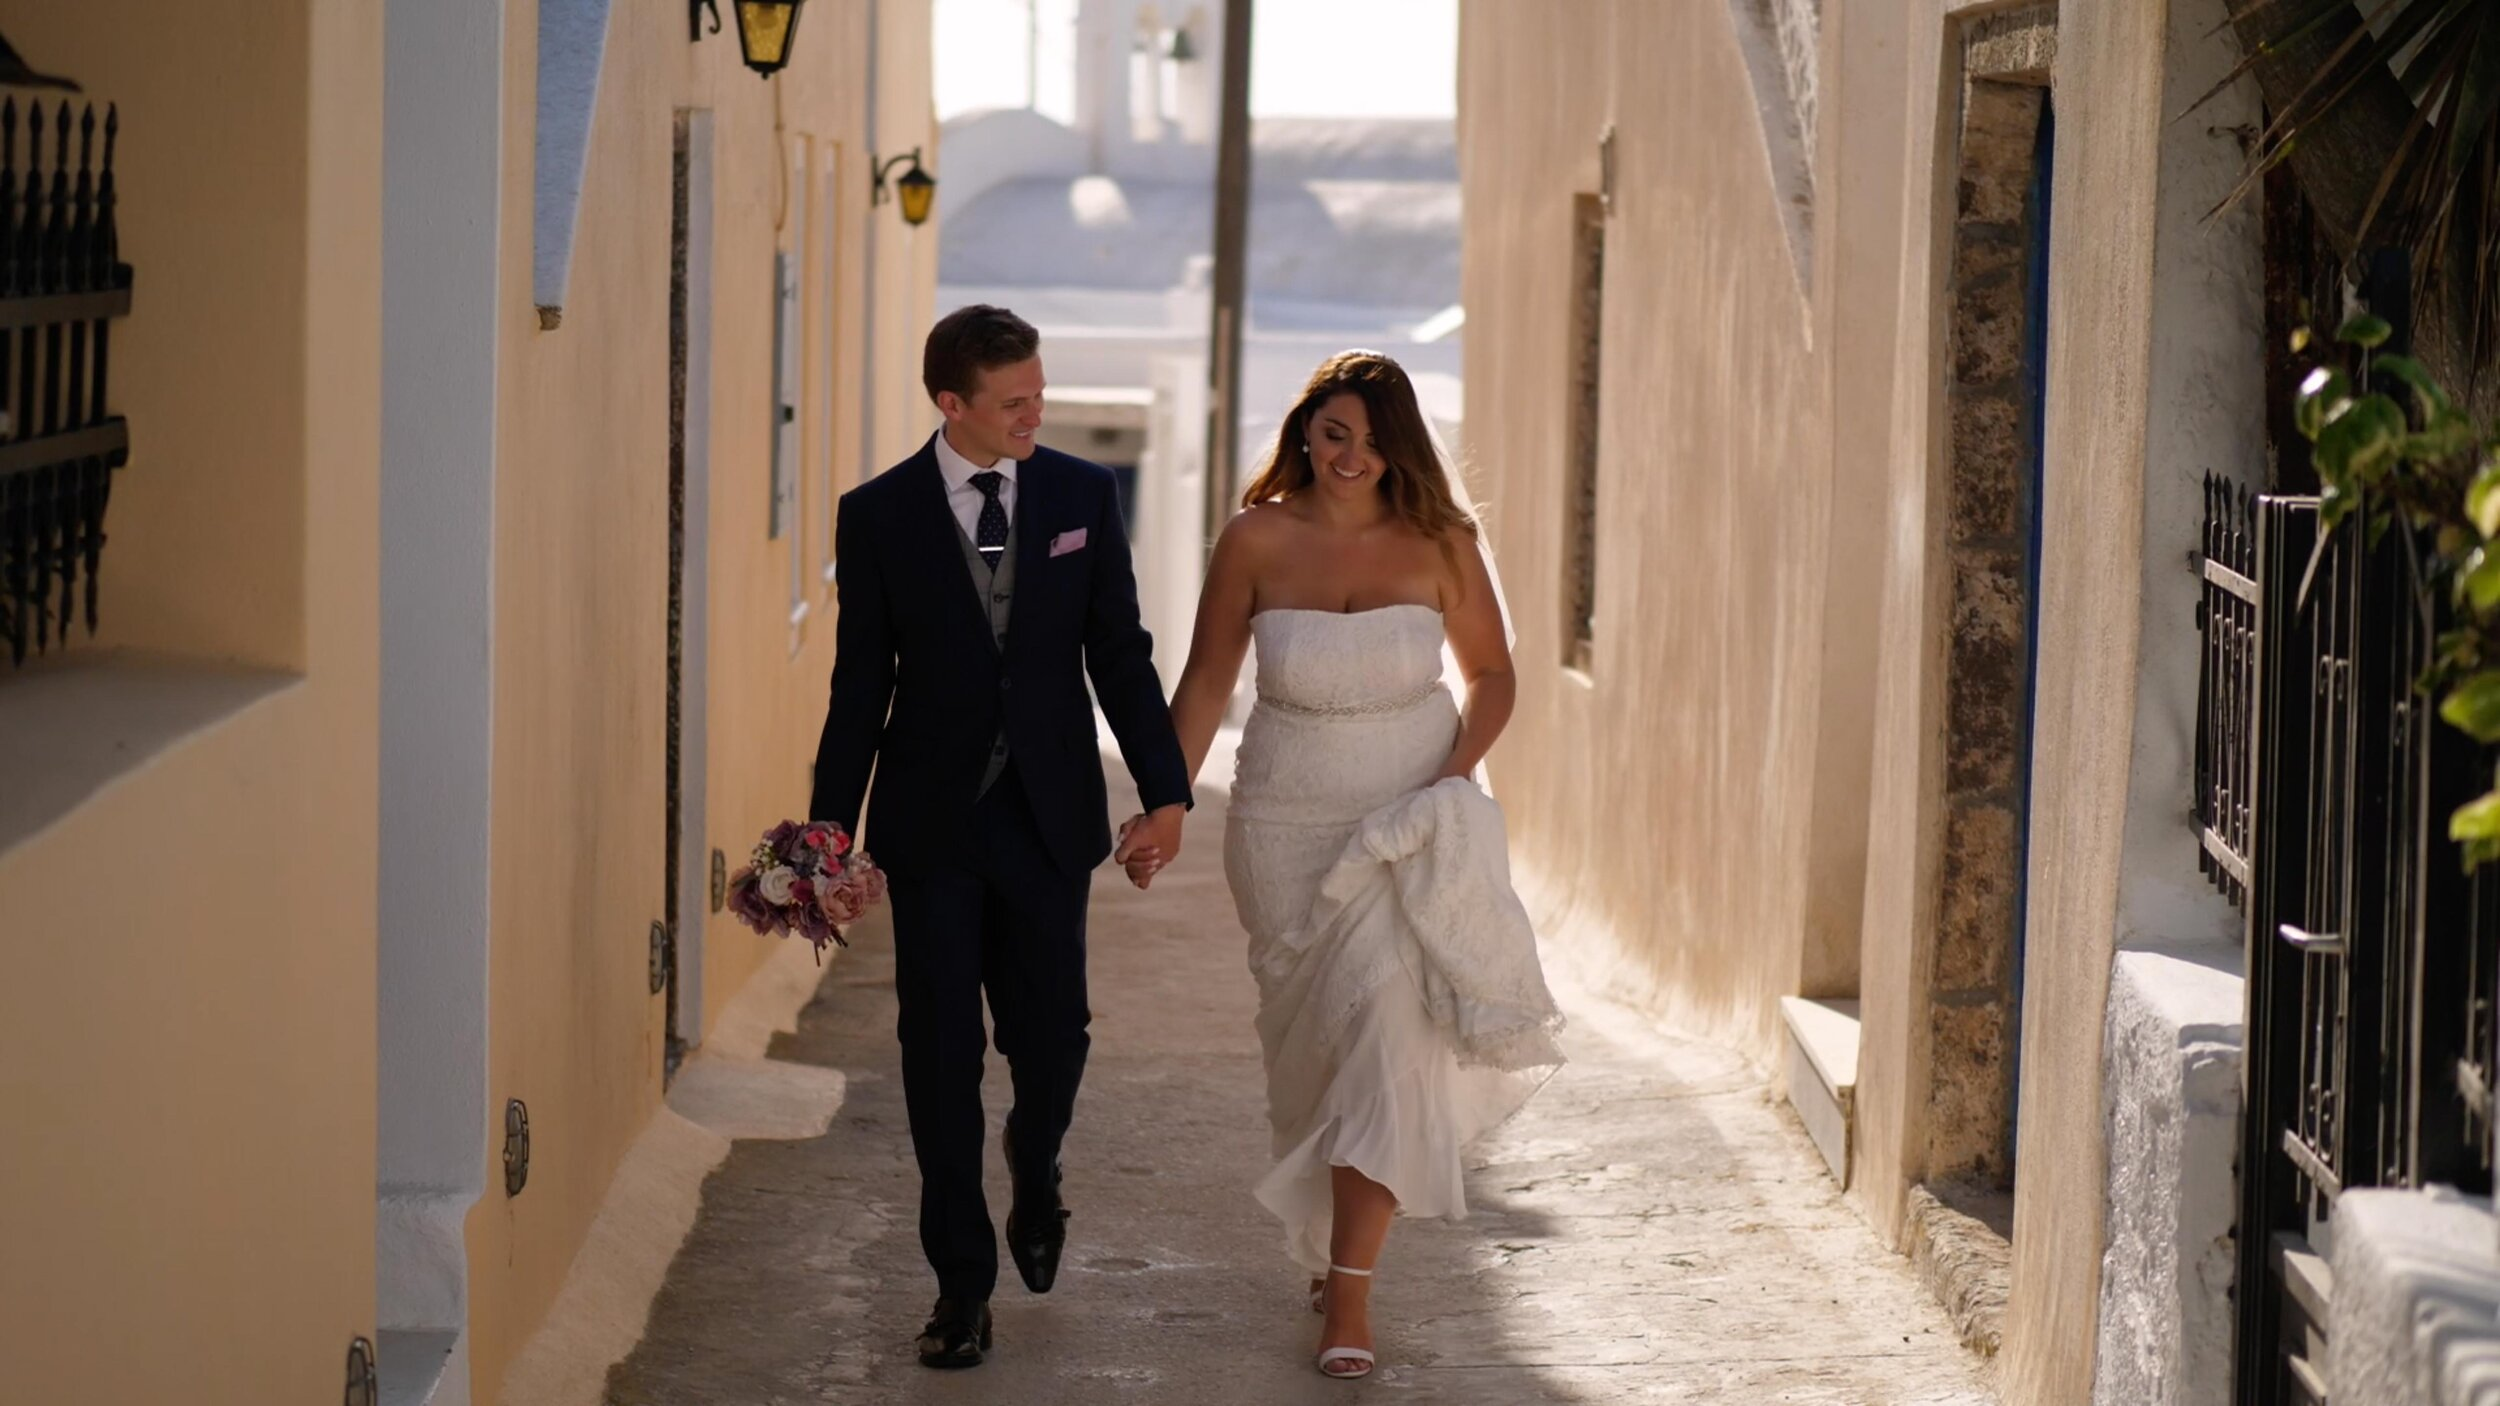 Gareth and Sara share a walk in the shade, as the sun beats down upon the backdrop. Walking through the streets of Pyrgos, Santorini, the couple walk hand in hand, as Gareth carries Sara's bouquet.